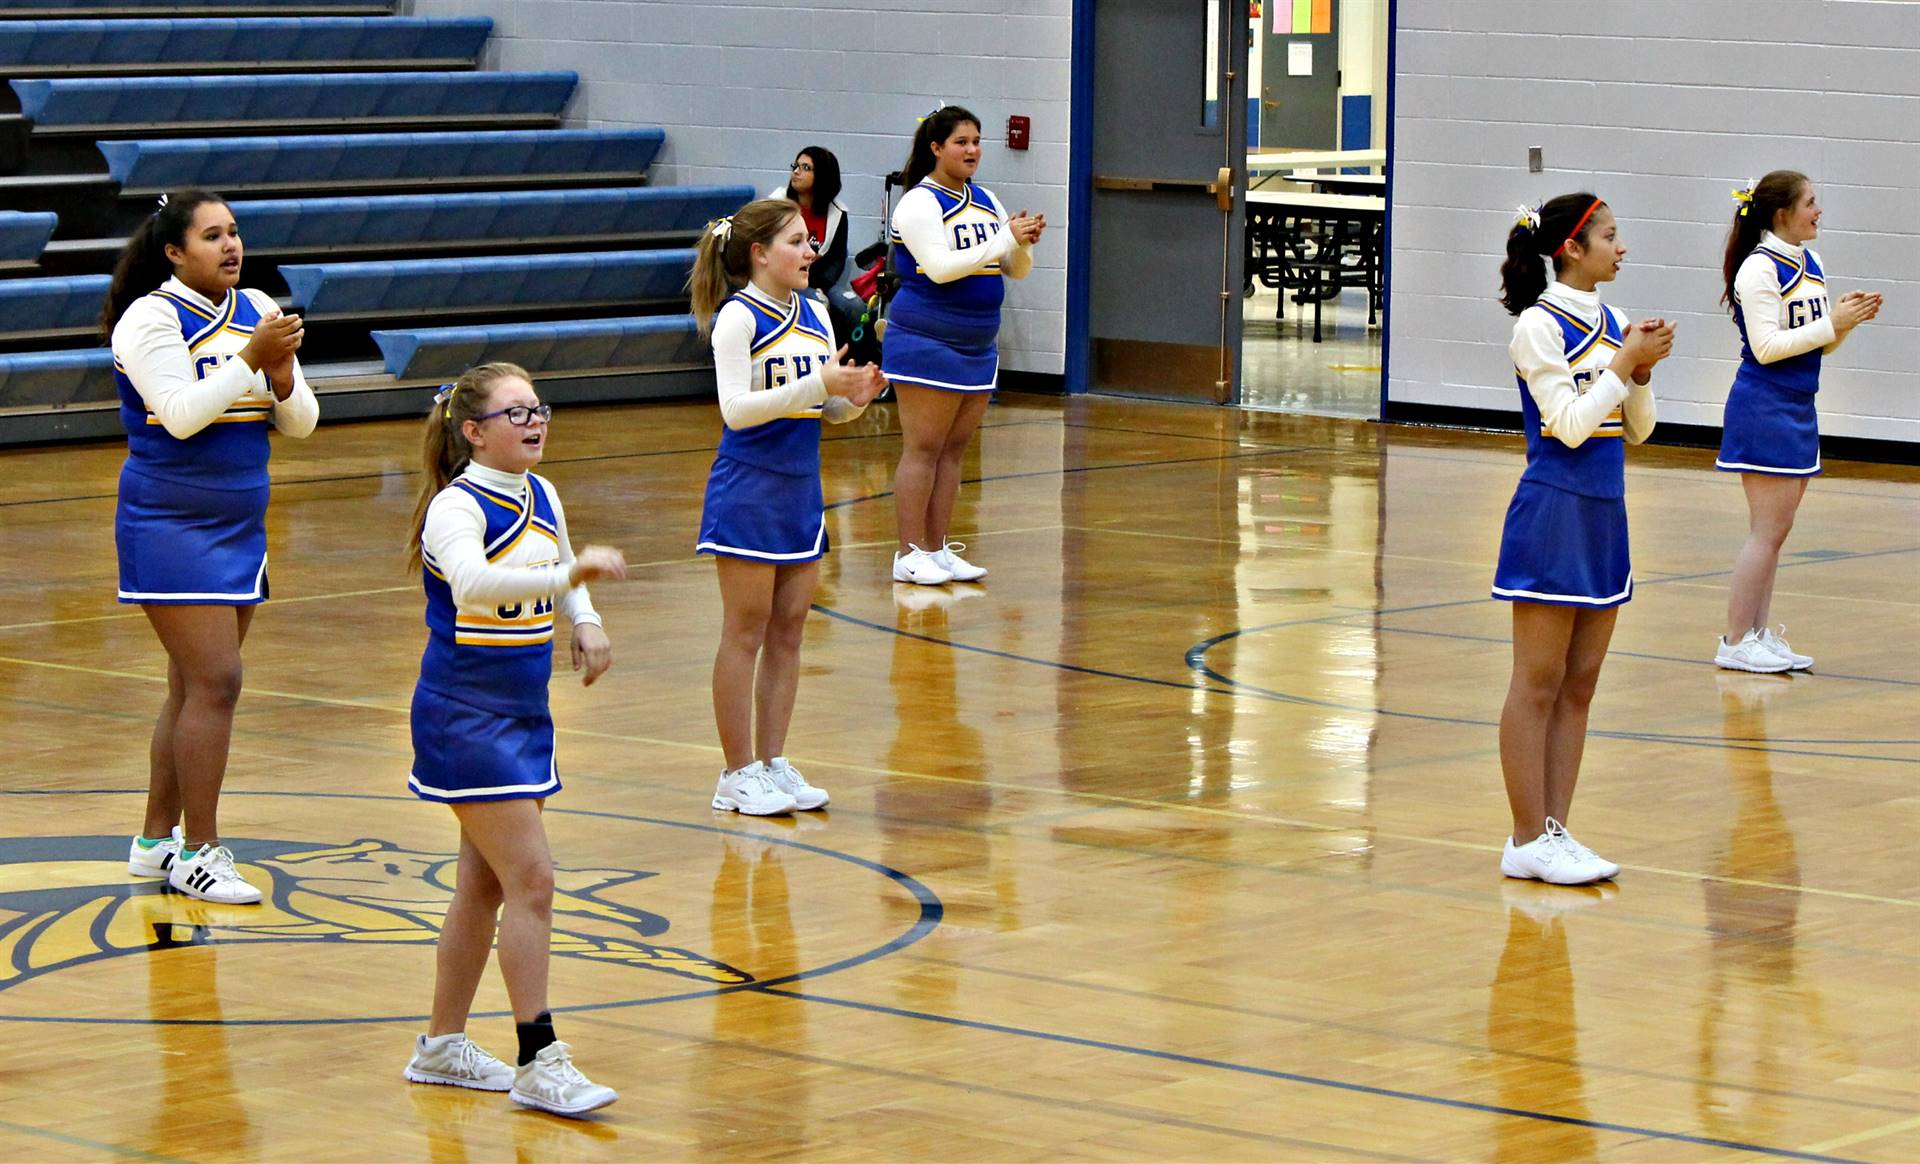 A group of cheerleaders cheering during halftime of a basketball game